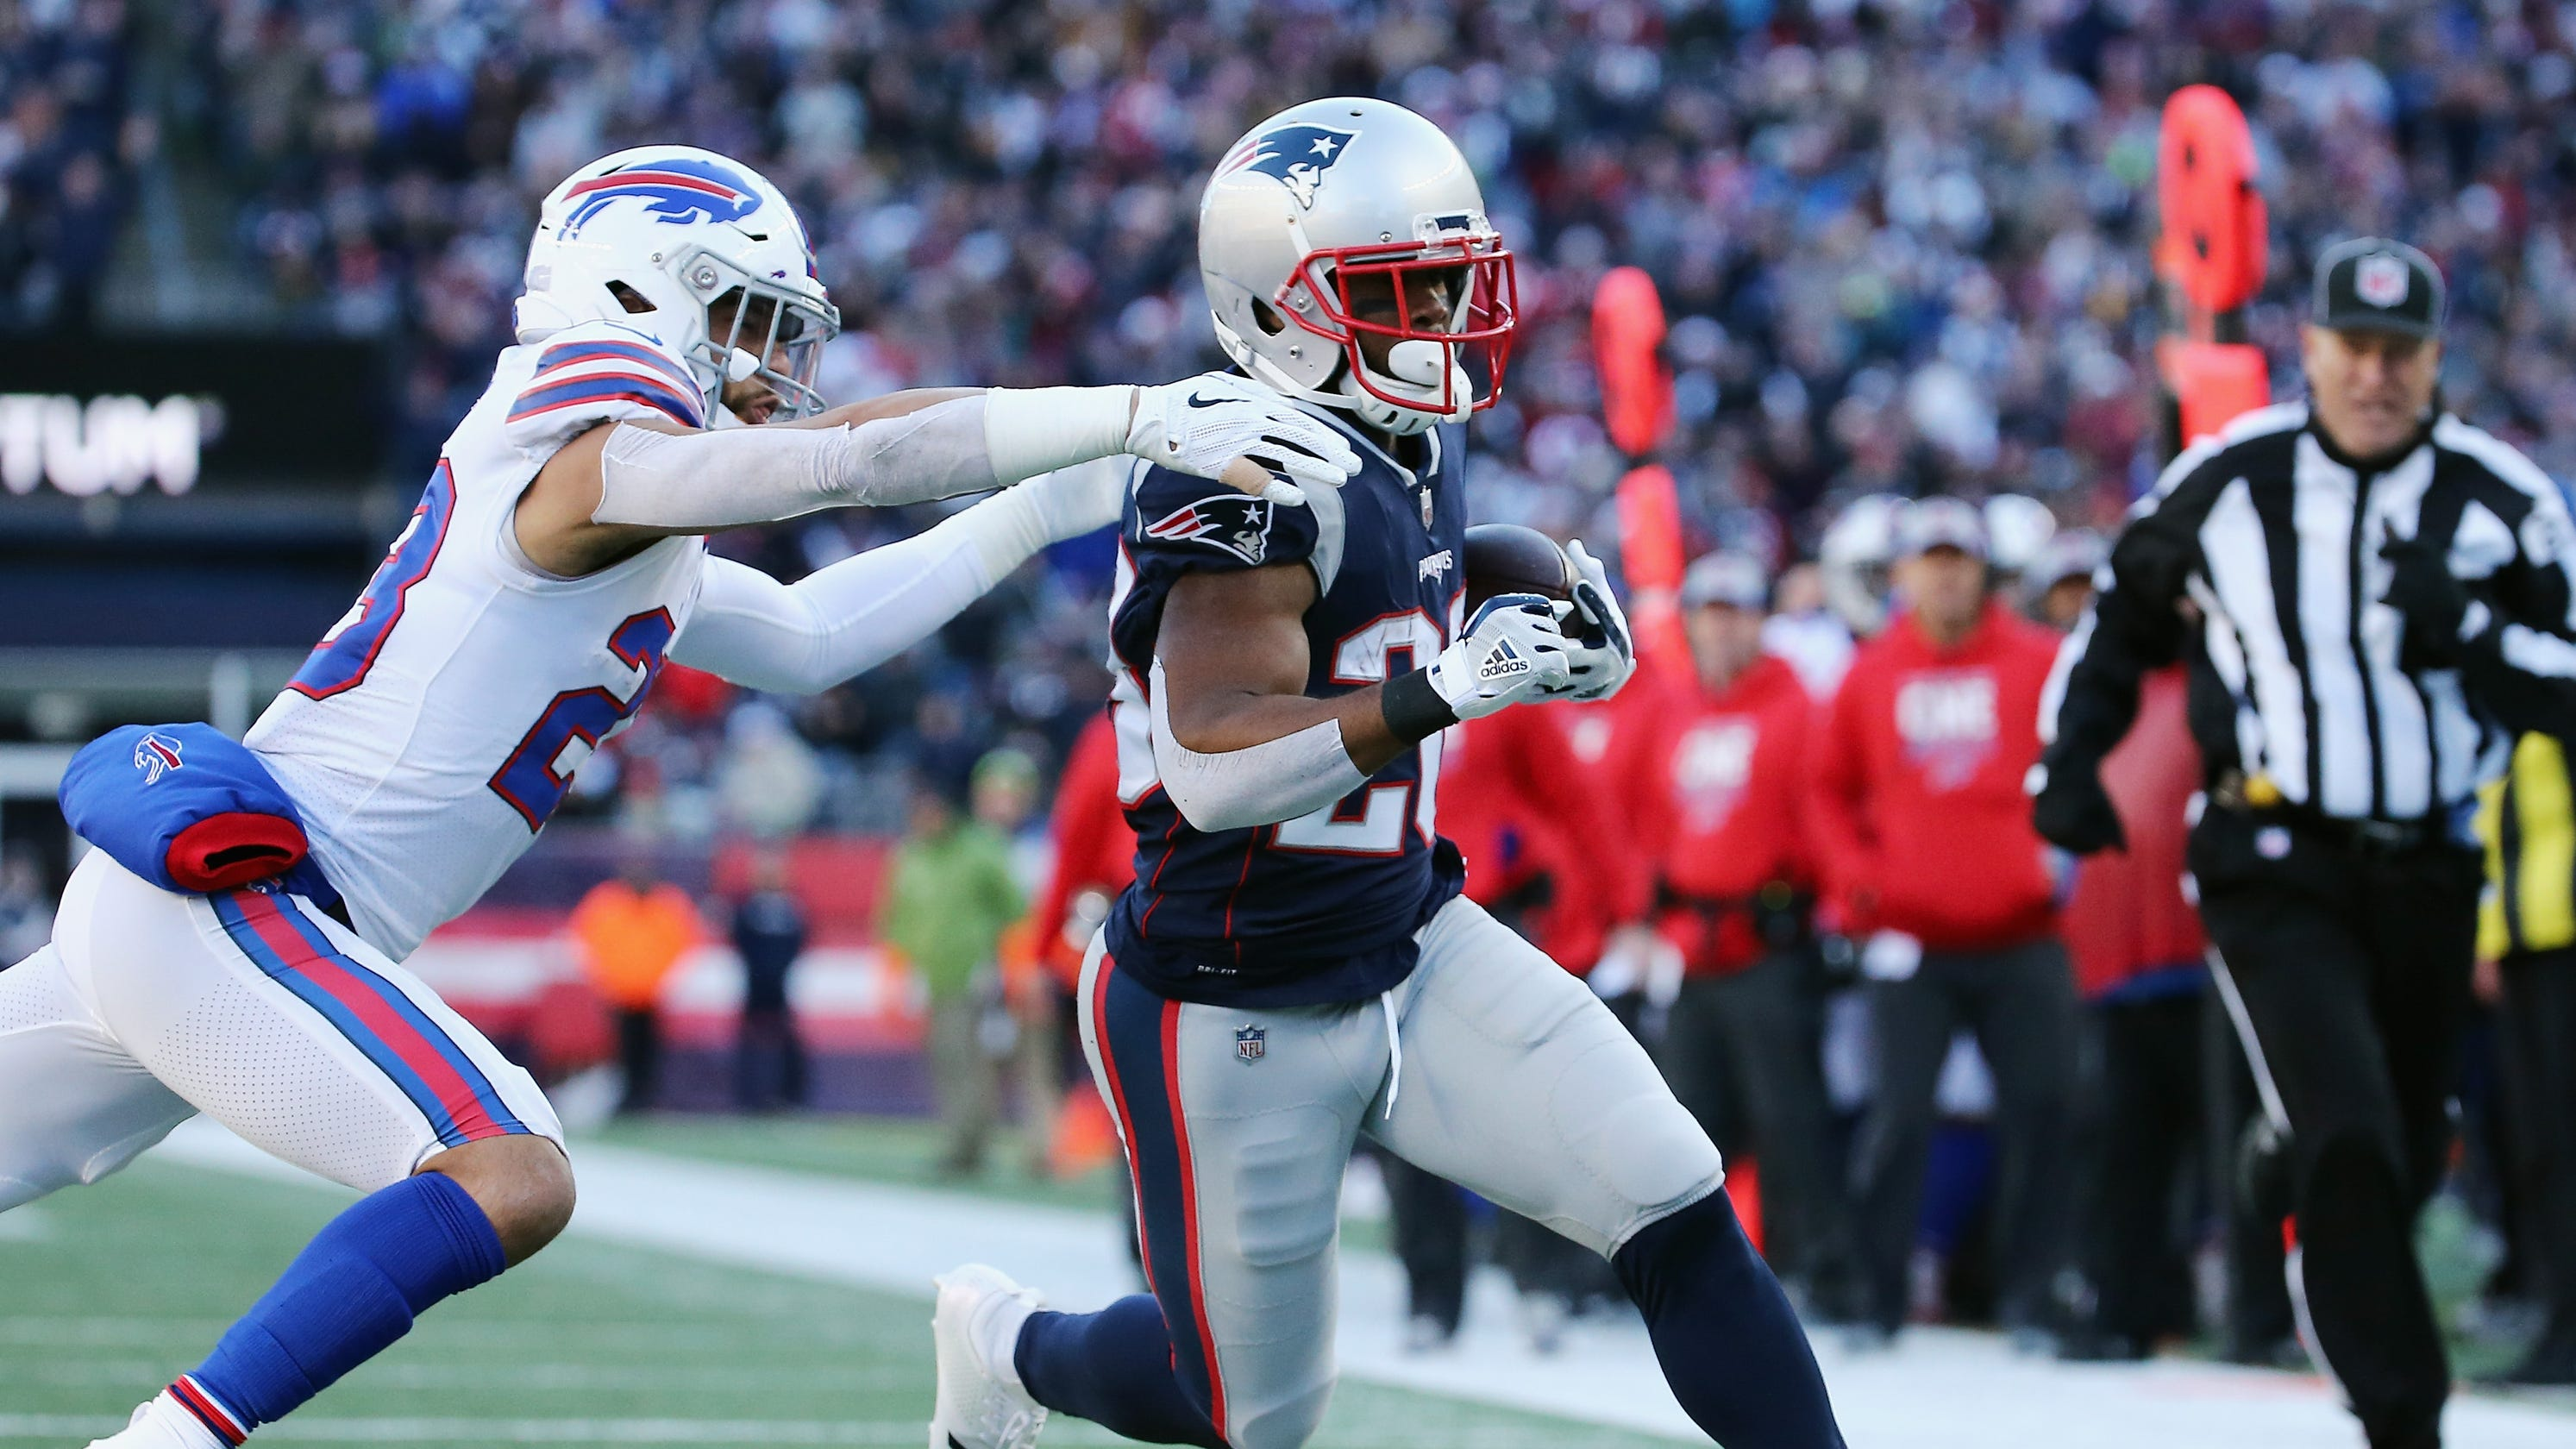 858936e2f86 New England Patriots claim AFC East title with win over Buffalo Bills